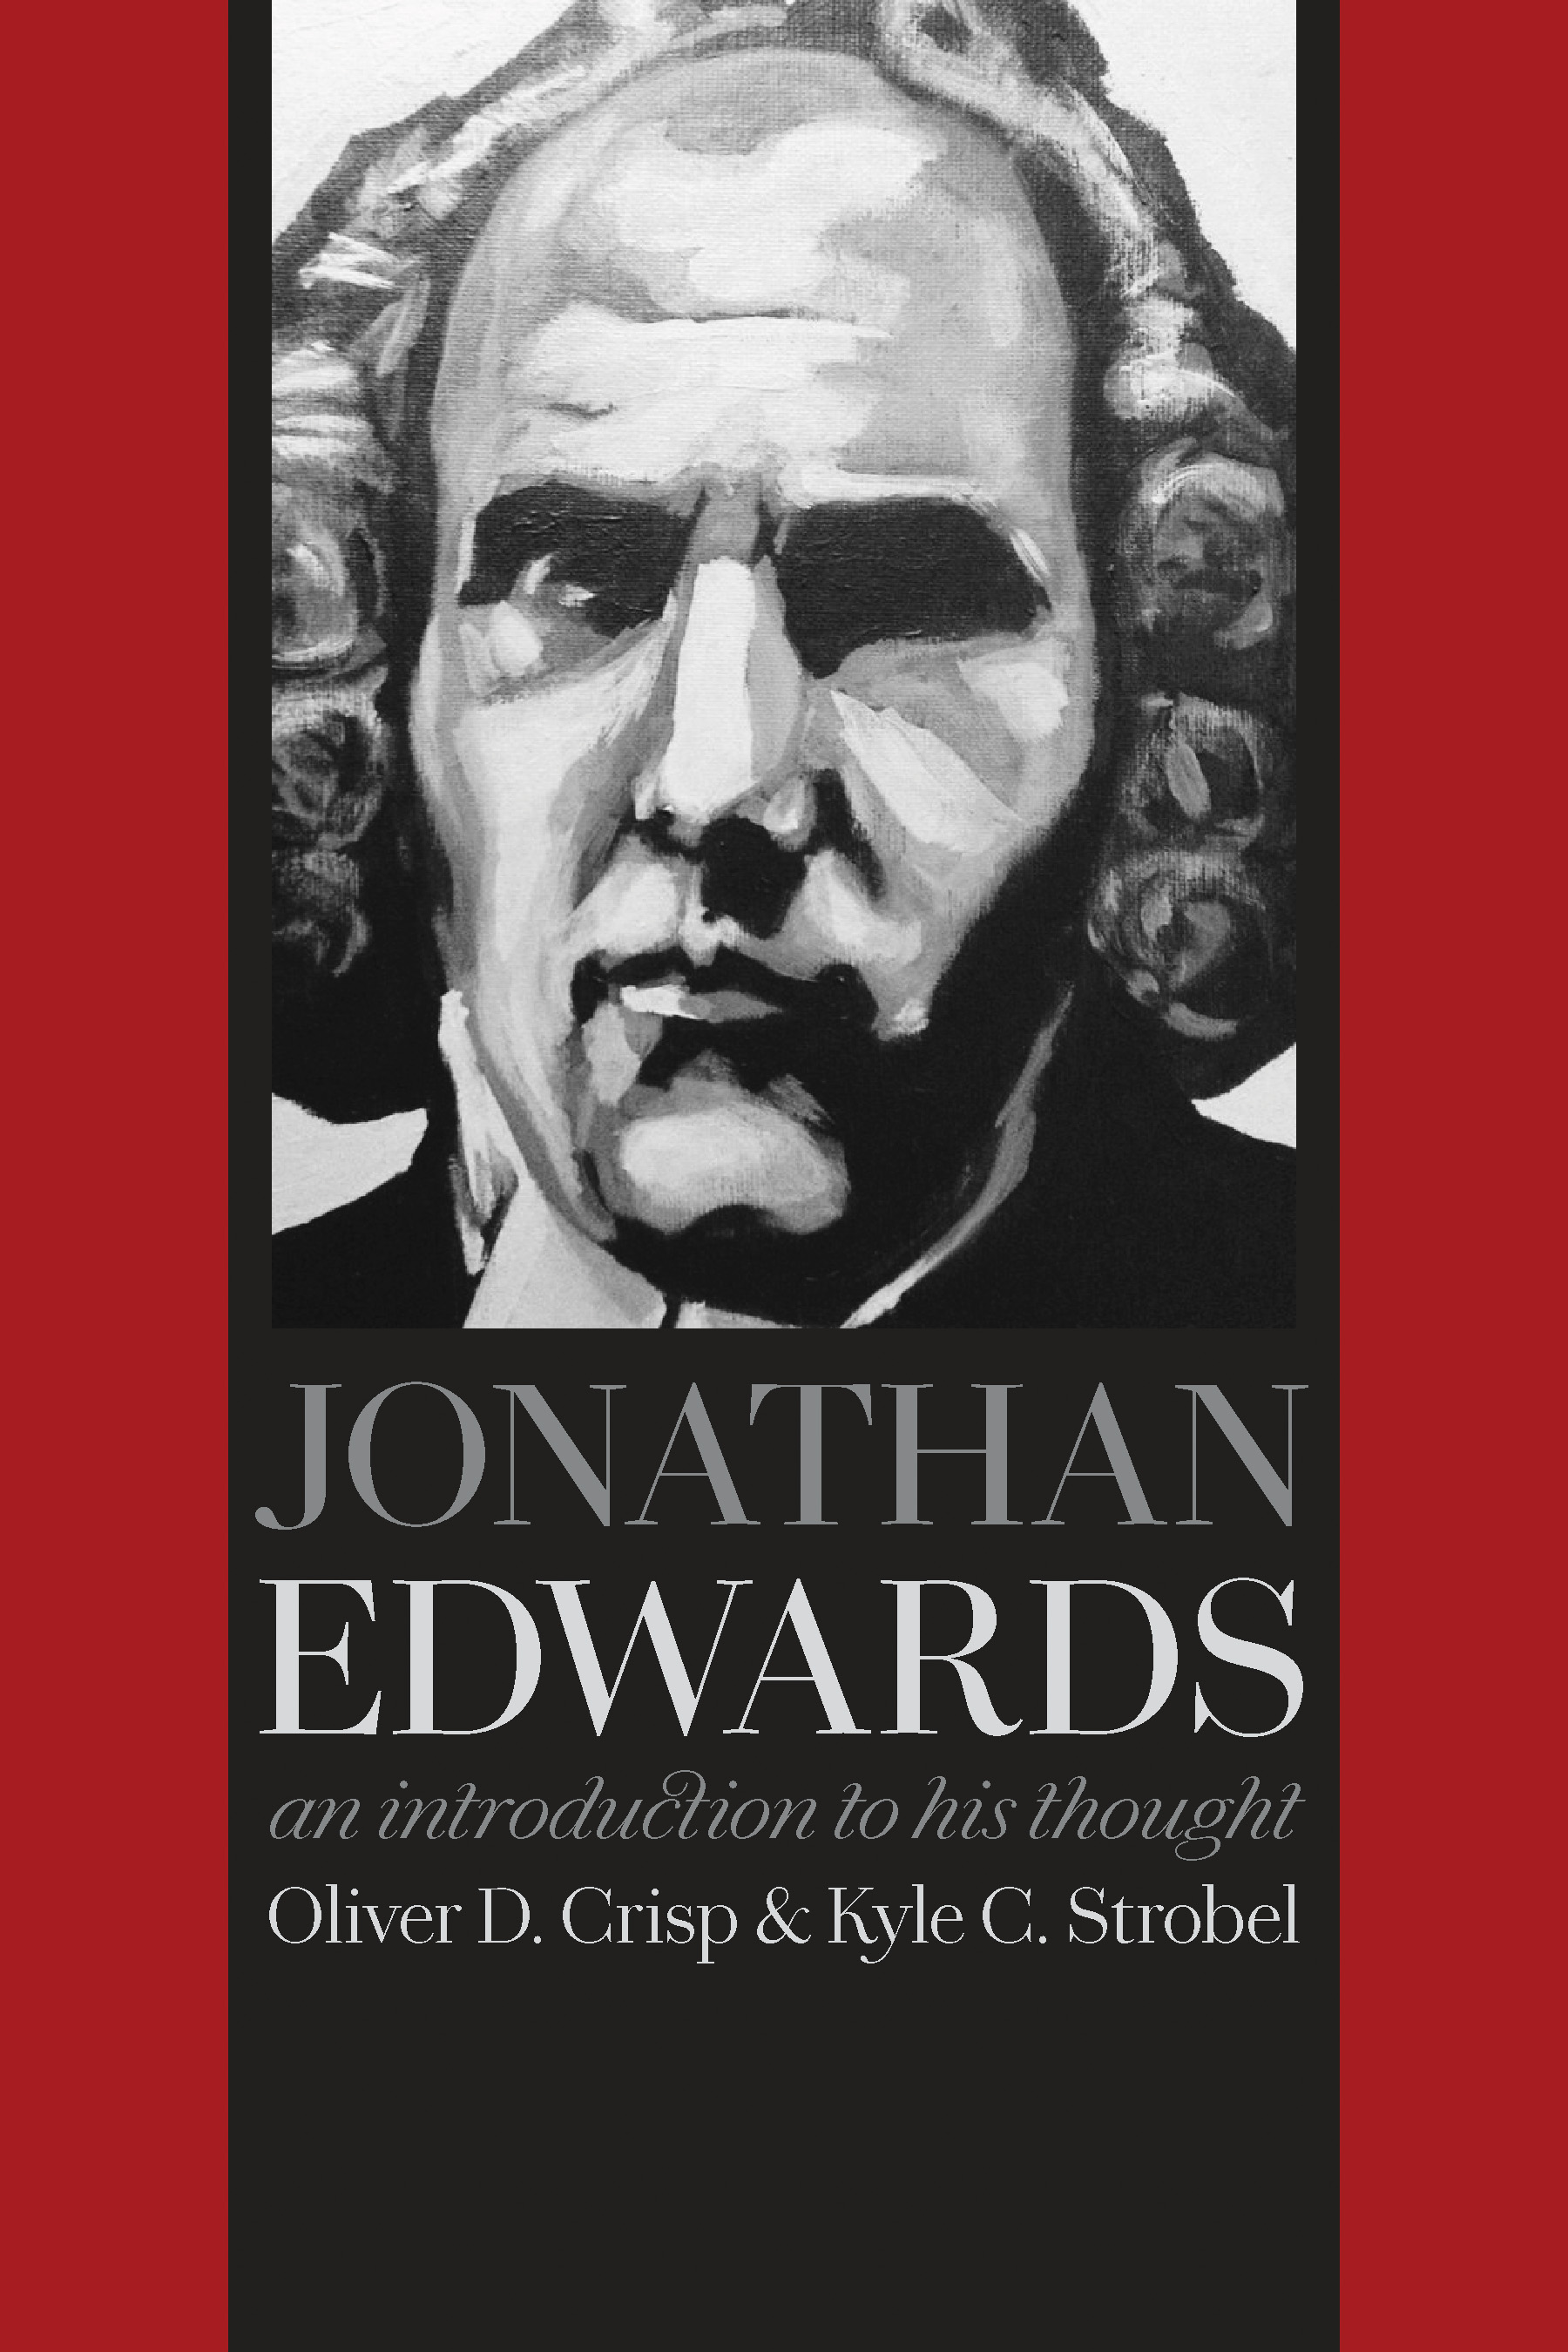 Image result for jonathan edwards an introduction to his thought